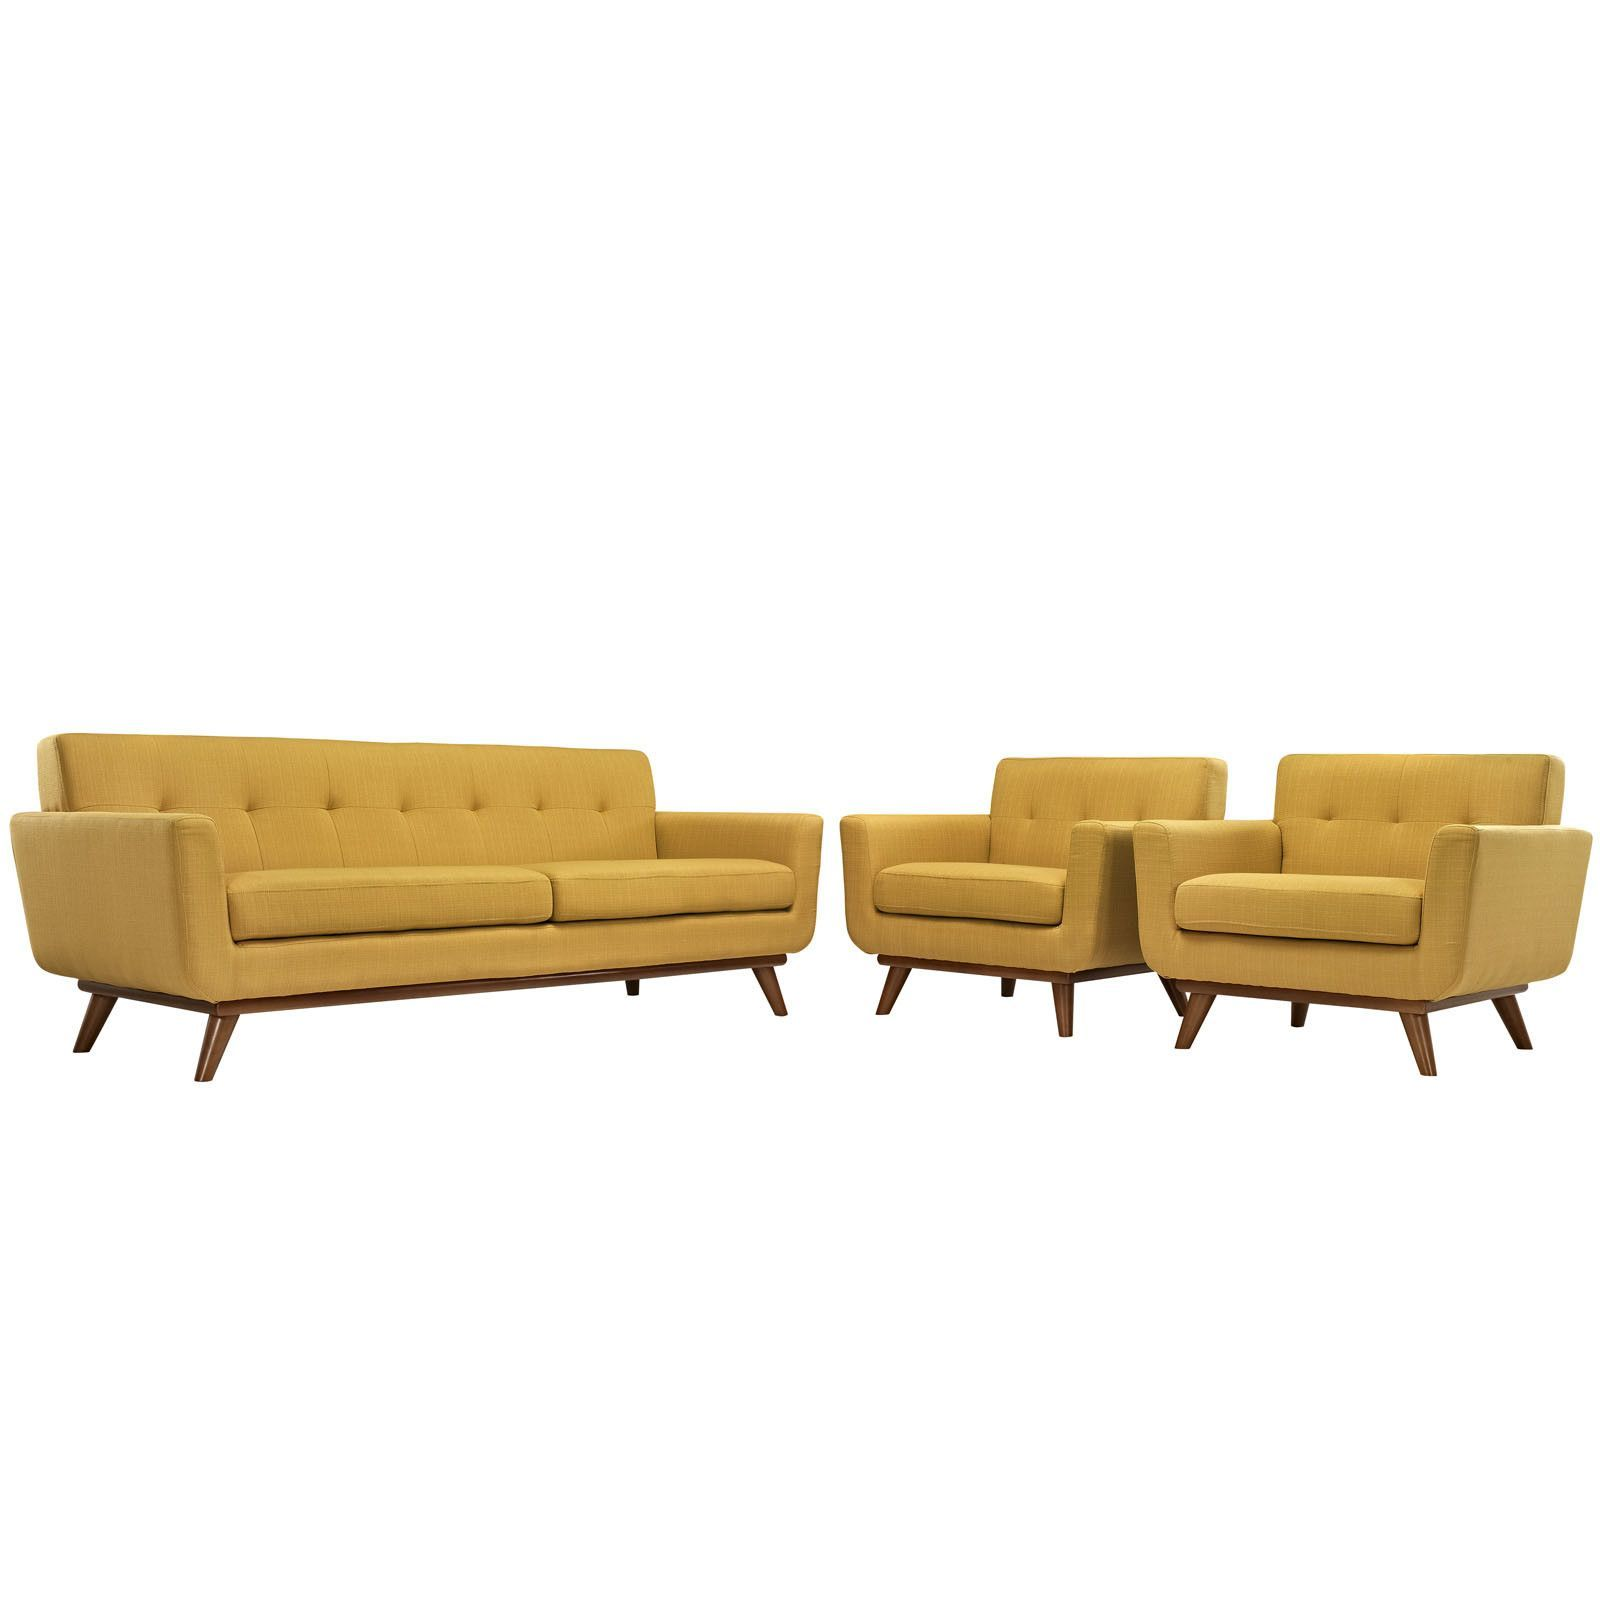 Engage 3 Piece Living Room Set